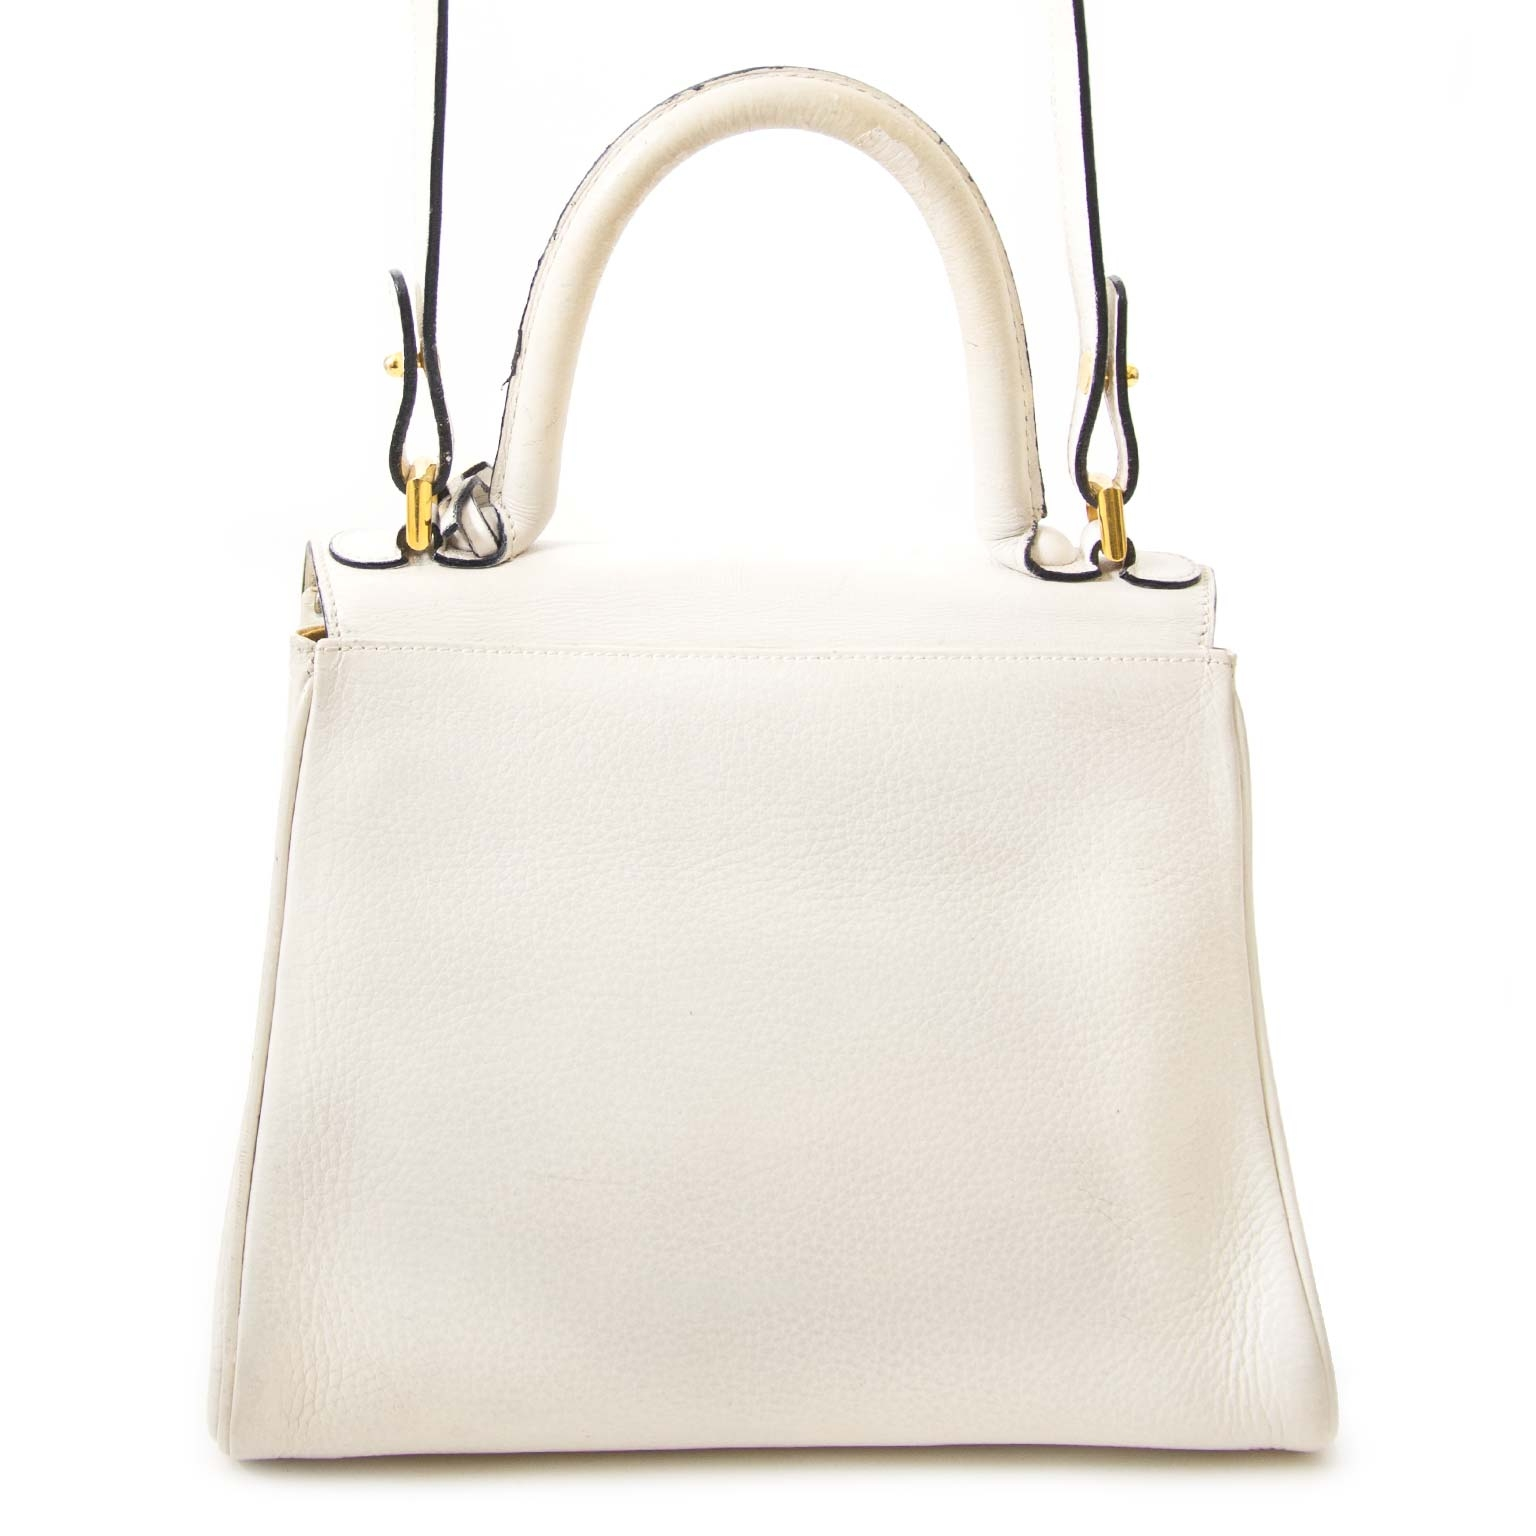 authentic Delvaux Brillant White PM Bag + Strap for sale at labellov